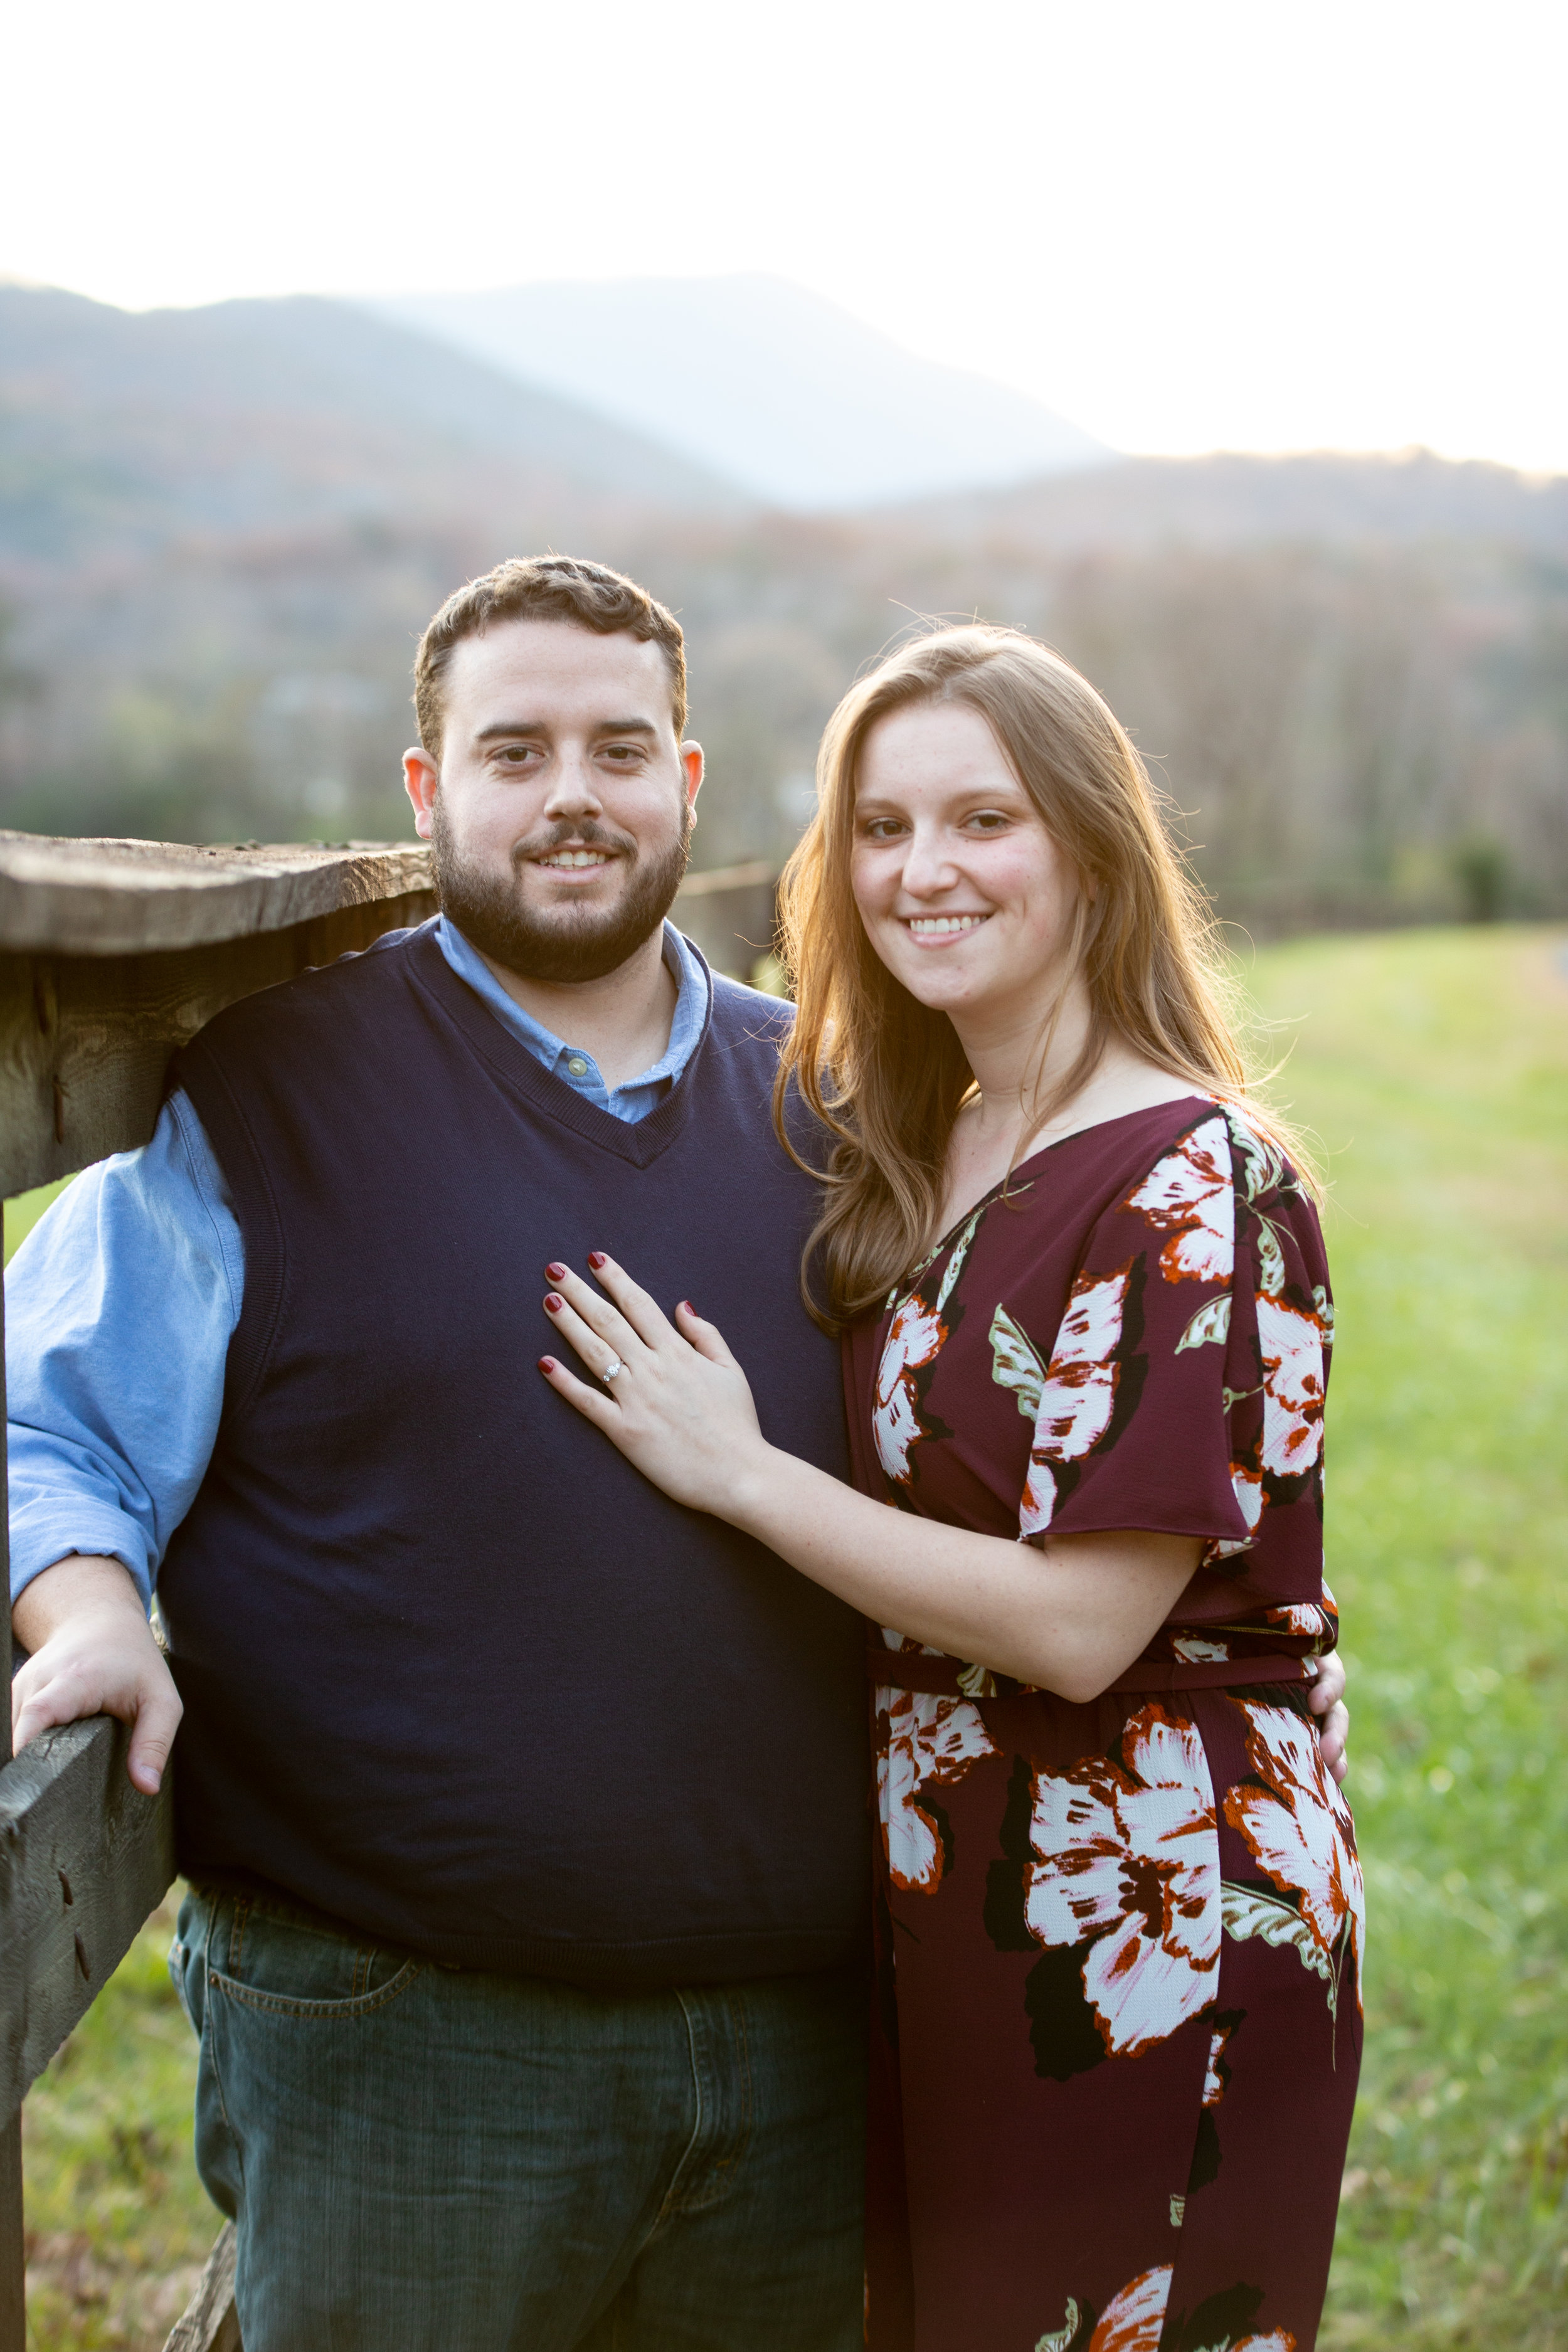 Blue-Ridge-Parkway-Fall-Sunset-couple-engaged-mountains-love-together-fence-roanoke-engaged-beauty-virginia-photography-nature-candid-outside